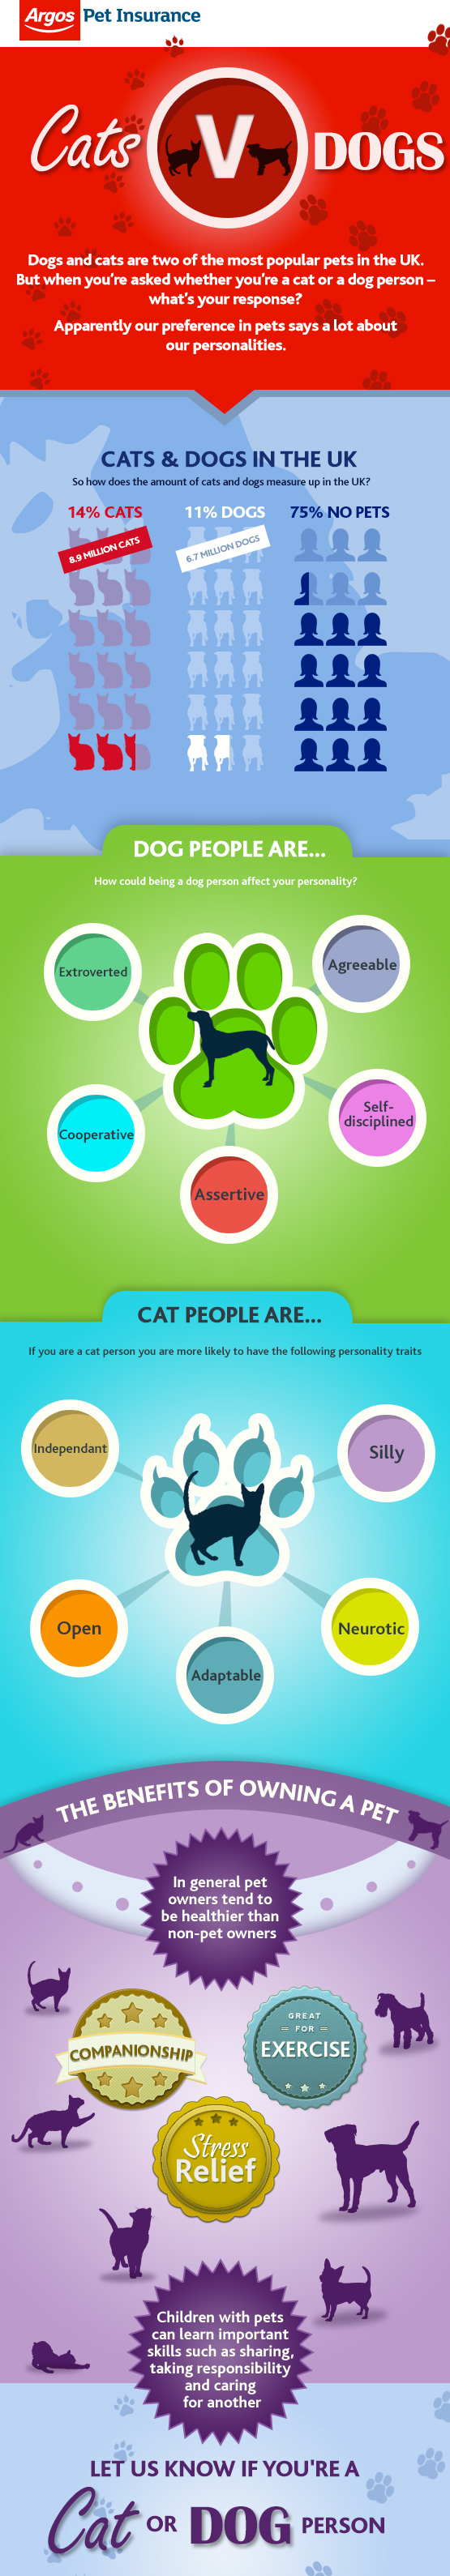 catsvdogs-infographic-live